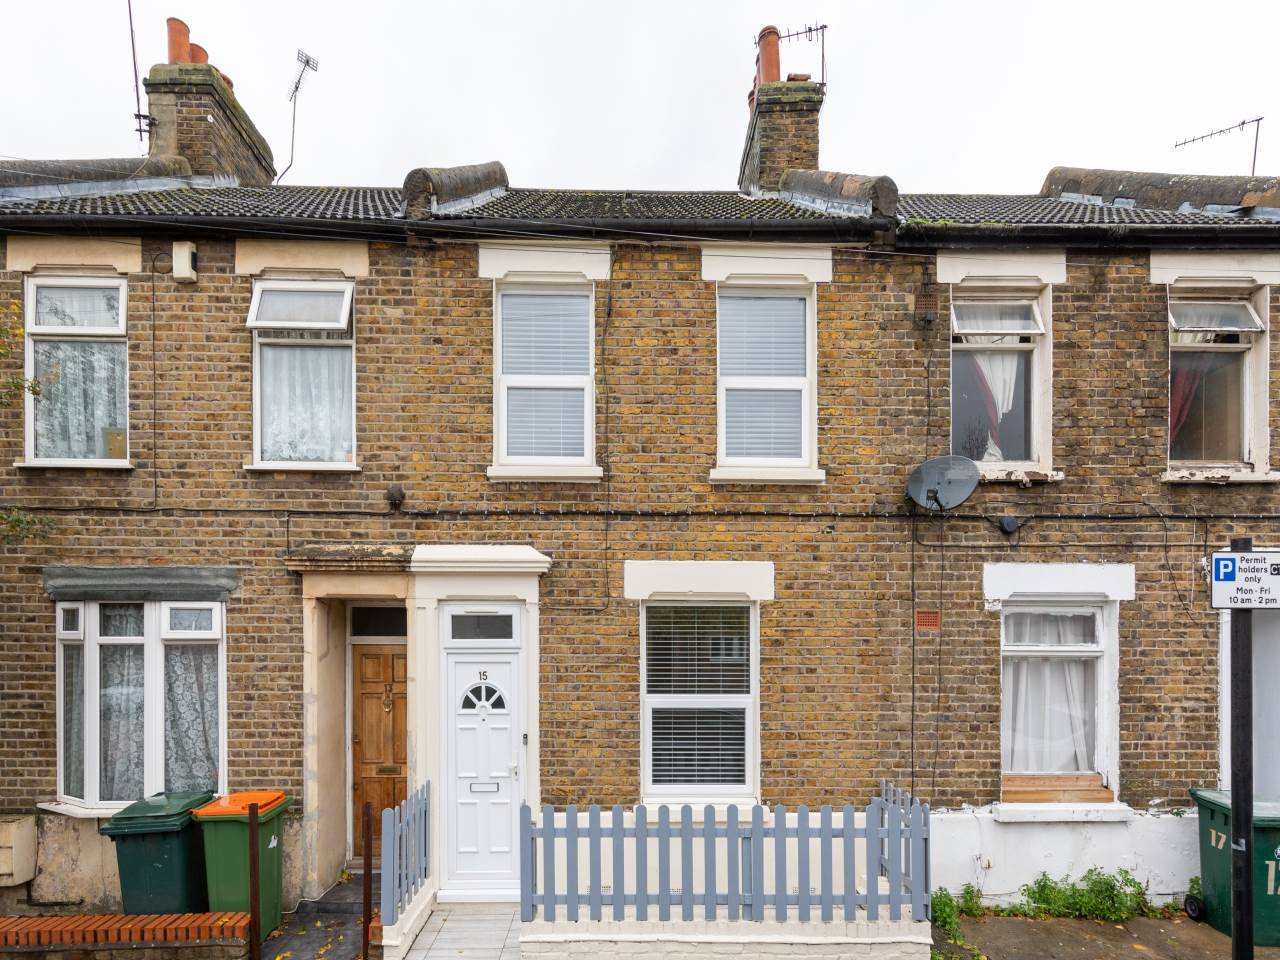 3 bed house for sale in Exning Road , Canning Town   - Property Image 1